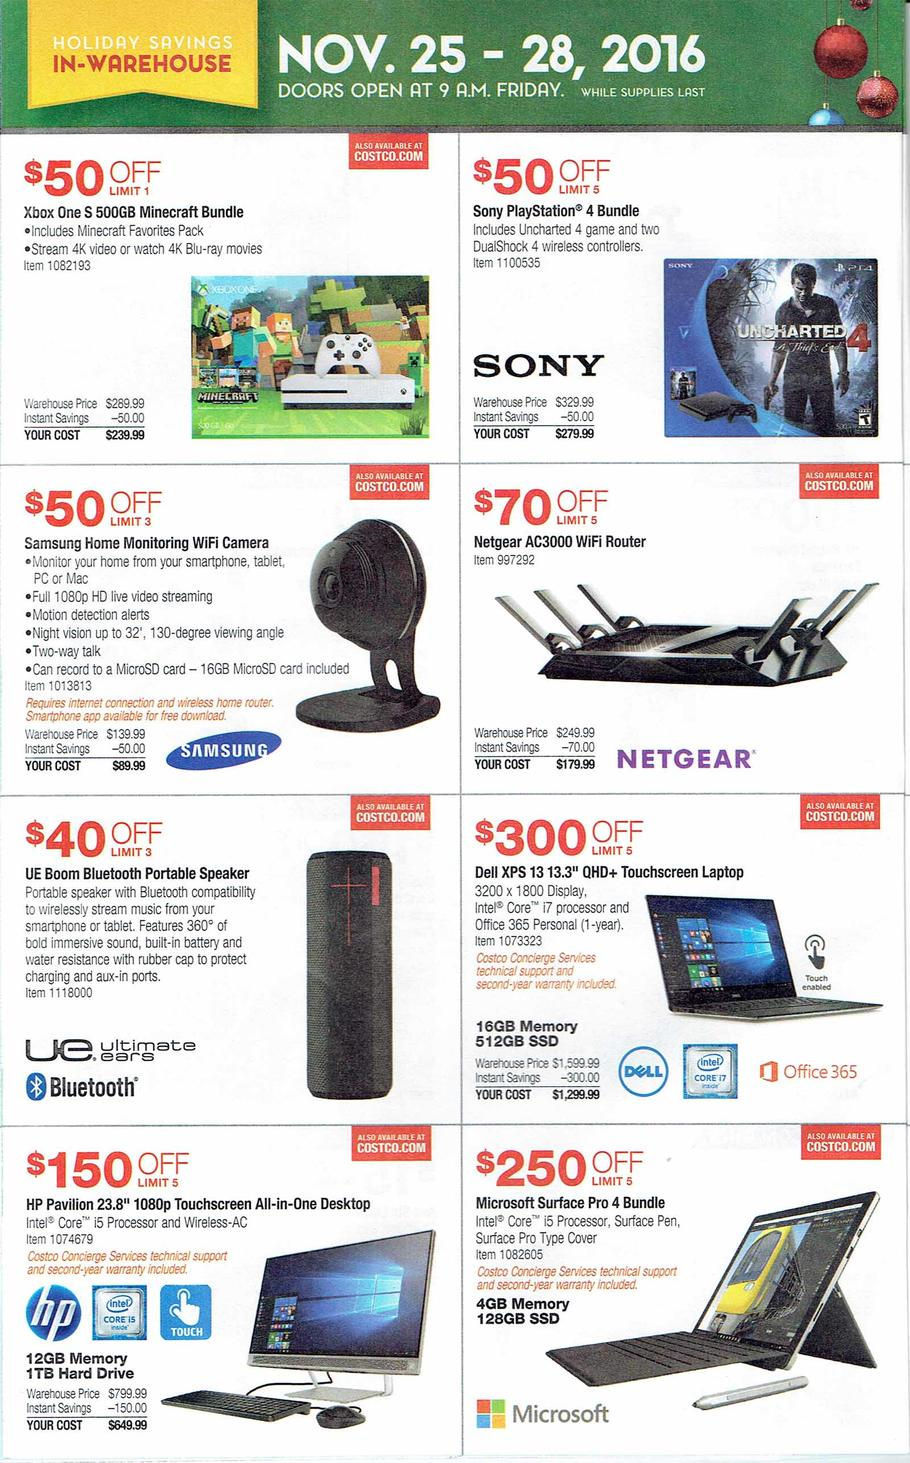 costco-black-friday-2016-ad-p-1